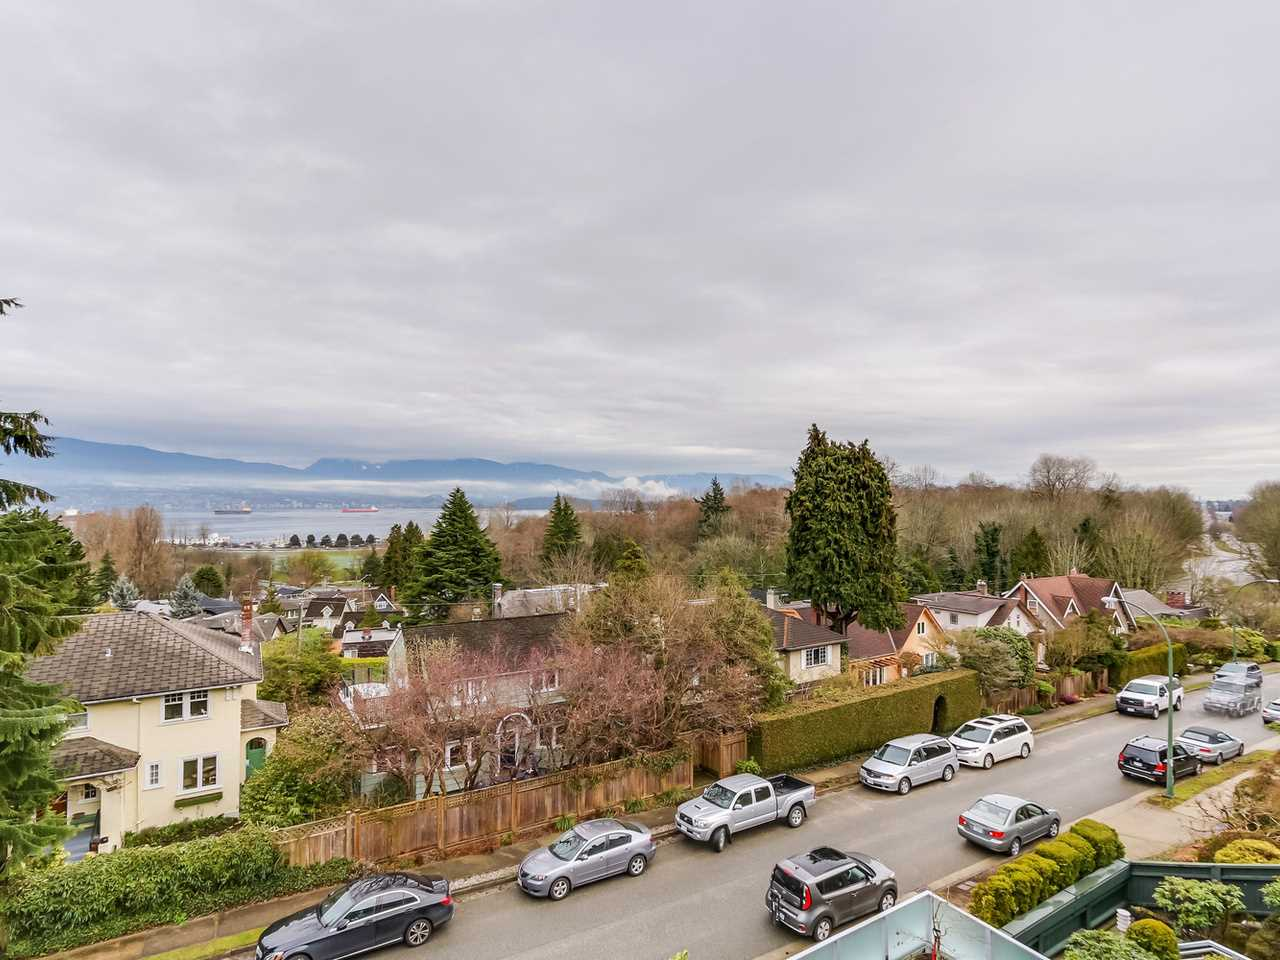 Main Photo: 4346 LOCARNO Crescent in Vancouver: Point Grey House for sale (Vancouver West)  : MLS®# R2148580